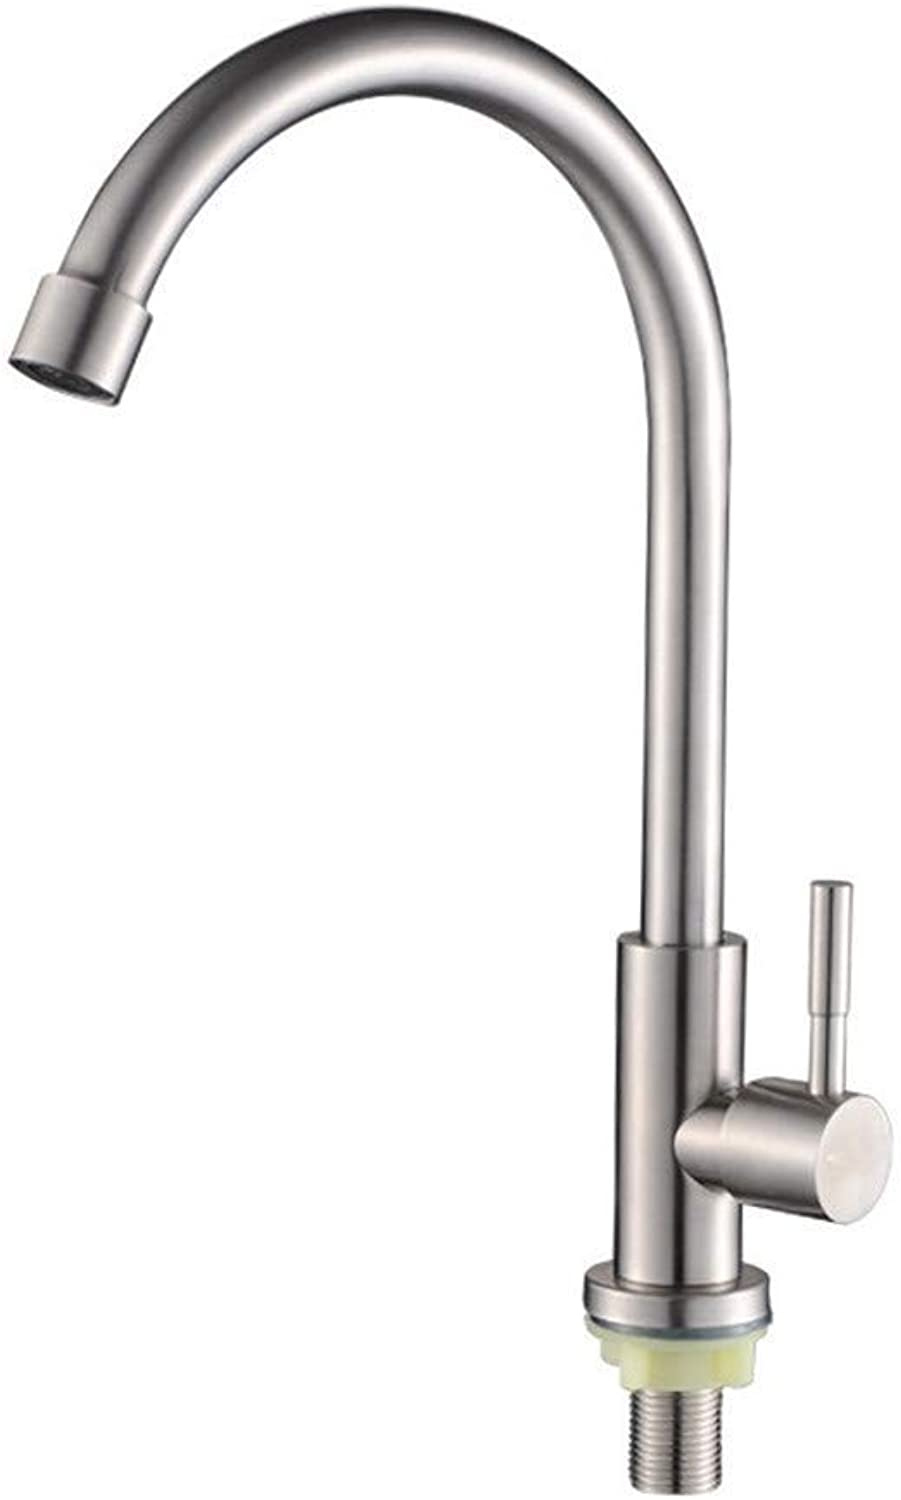 Brass Kitchen Modern Single Lever Kitchen Faucet Kitchen Faucet 304 Stainless Steel